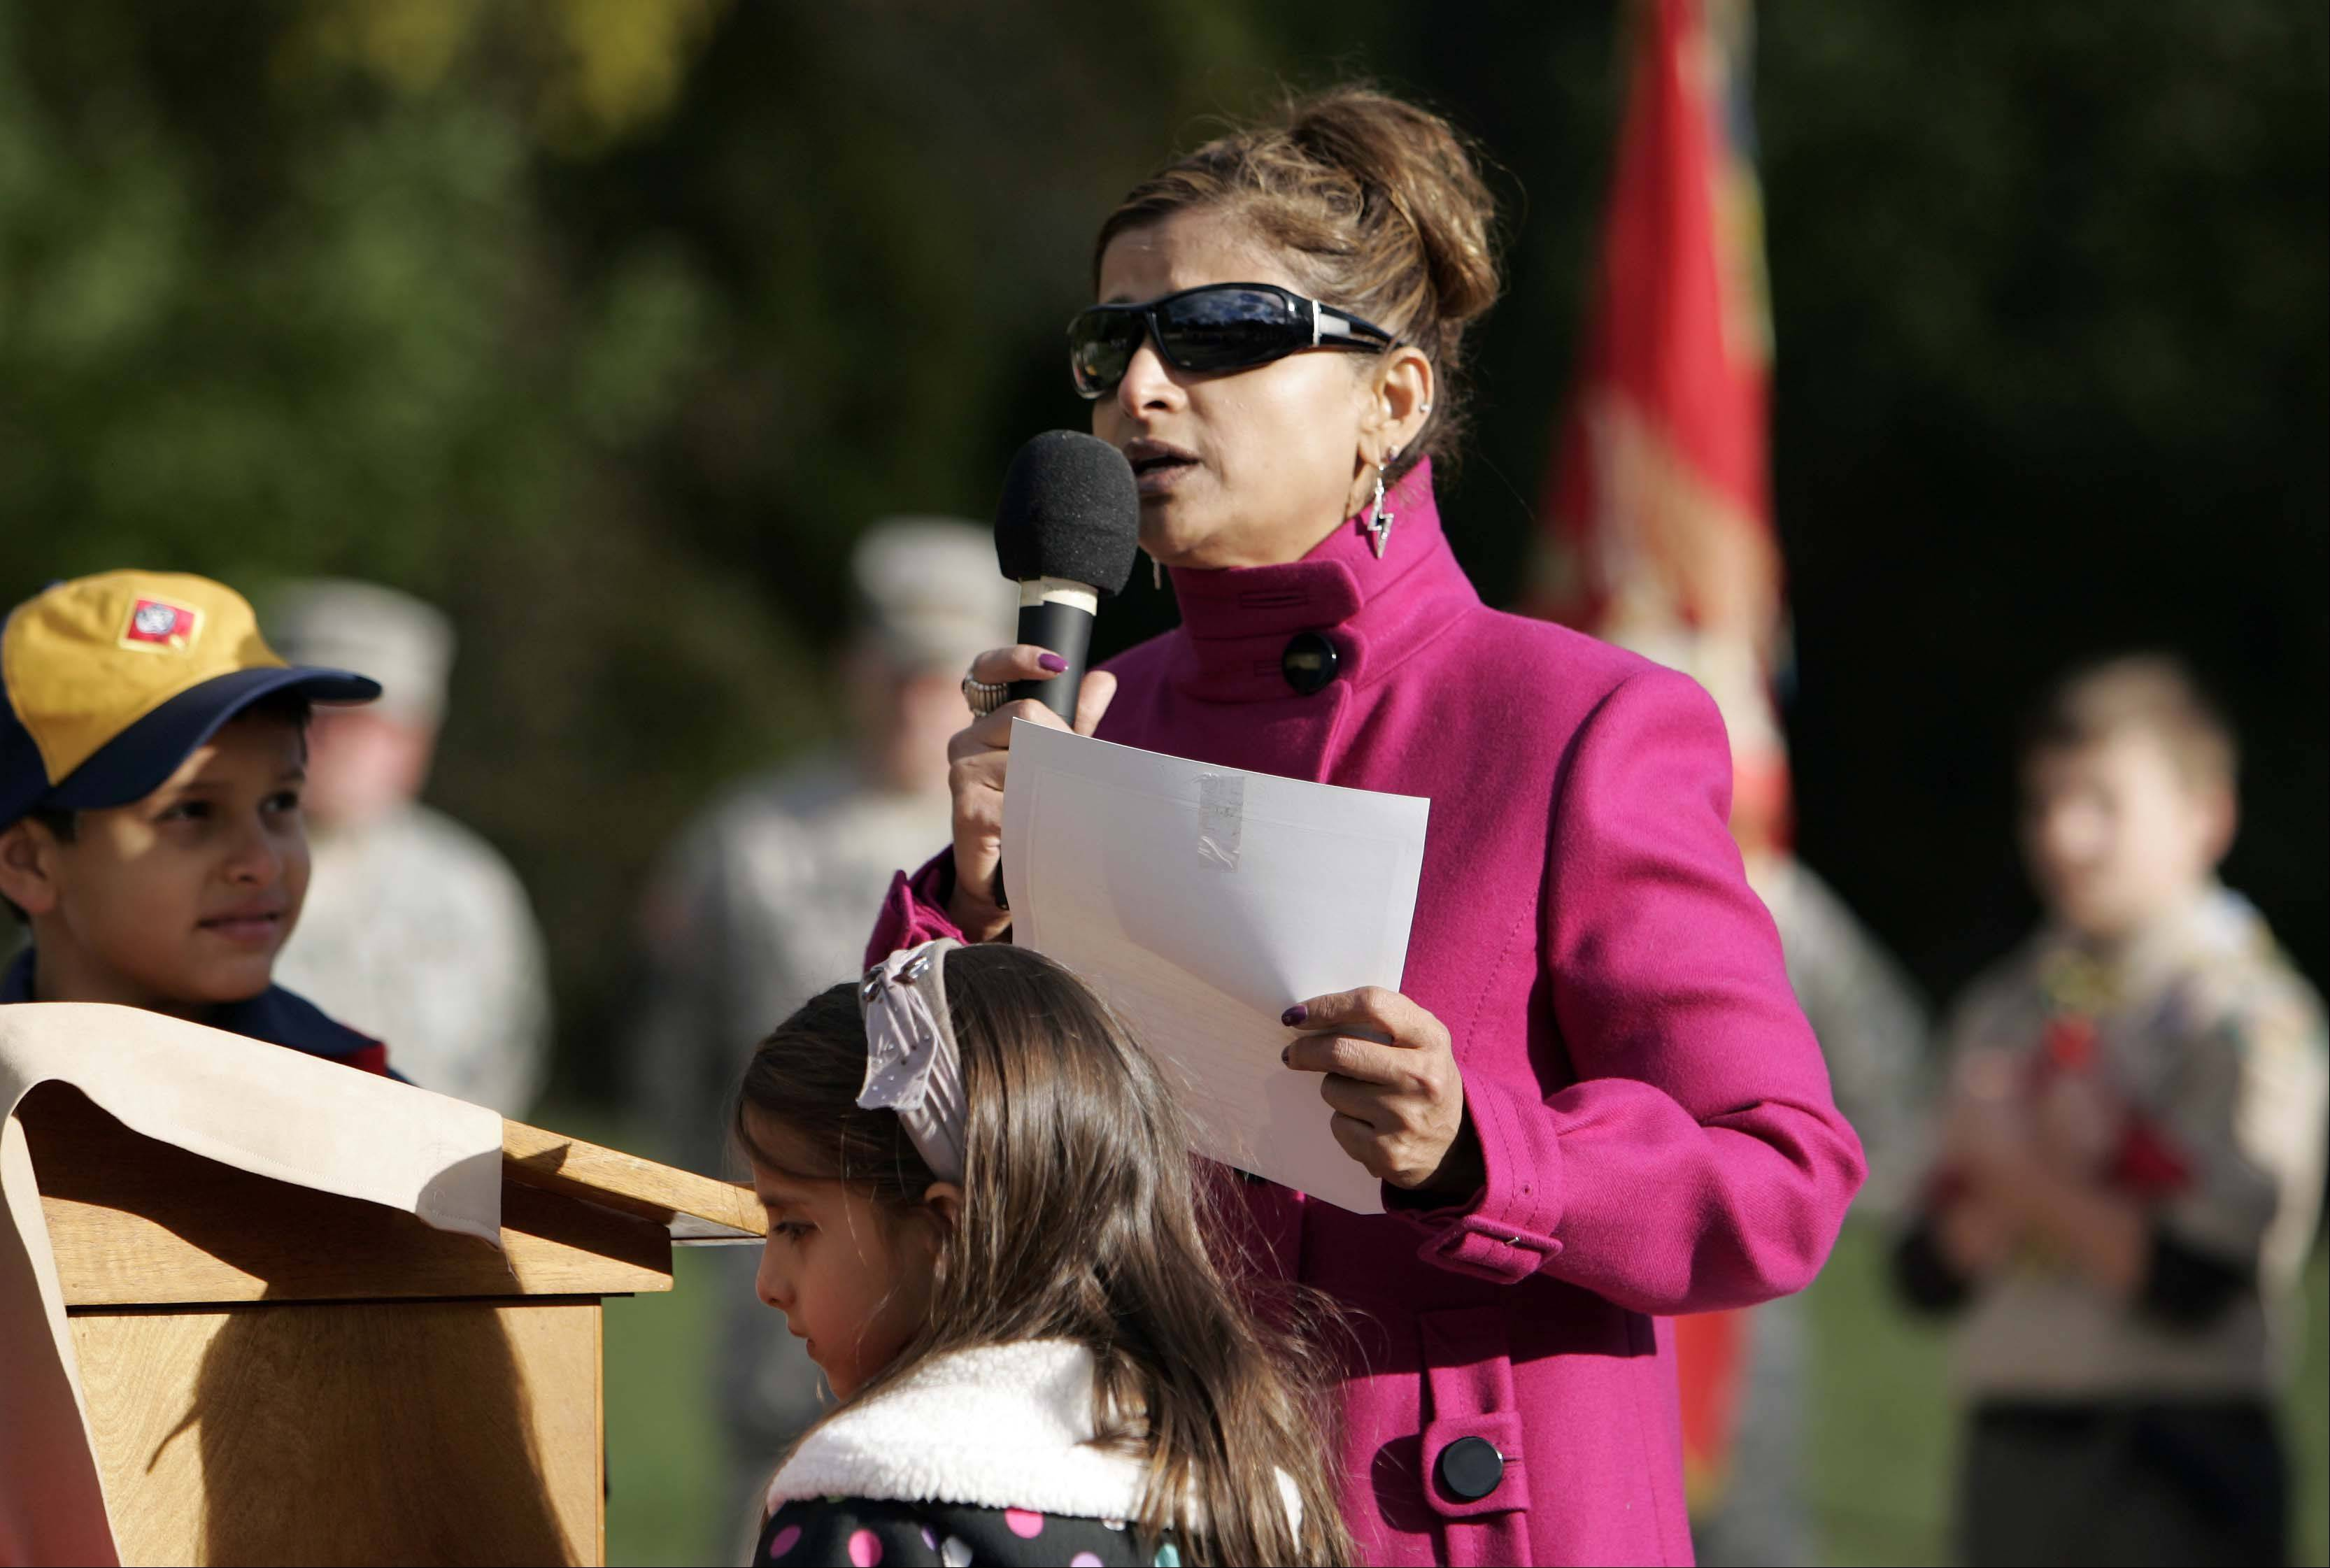 With her children Angeli, 6, and Joshua, 8, at her side, Rashmi Grieco reads a poem about her husband Kevin Grieco, who was killed in Afghanistan in 2008.